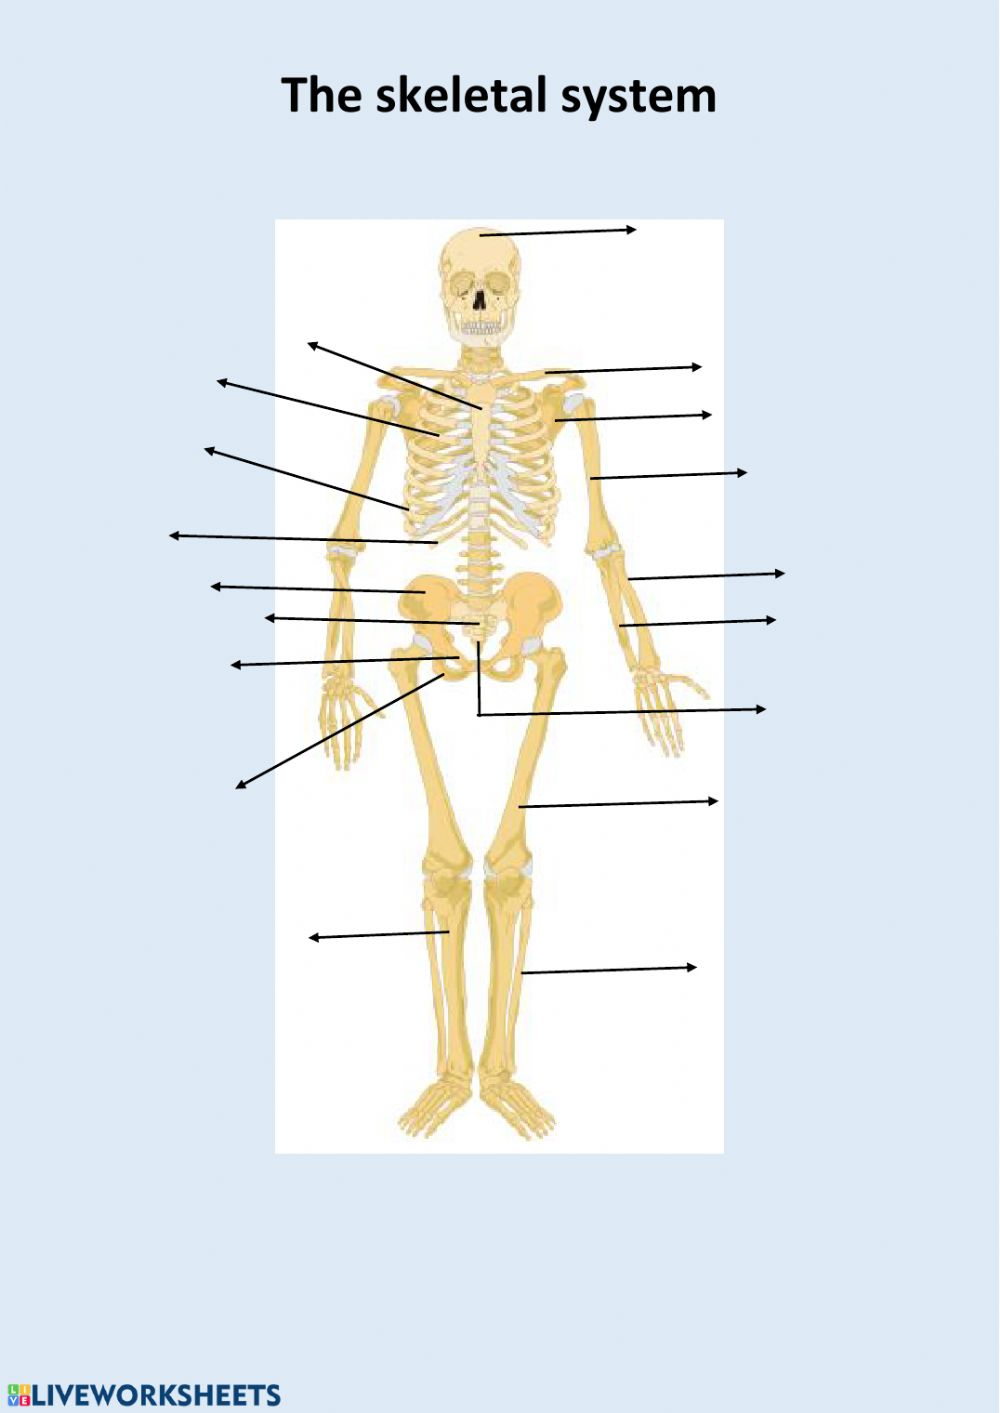 medium resolution of The skeletal system interactive worksheet